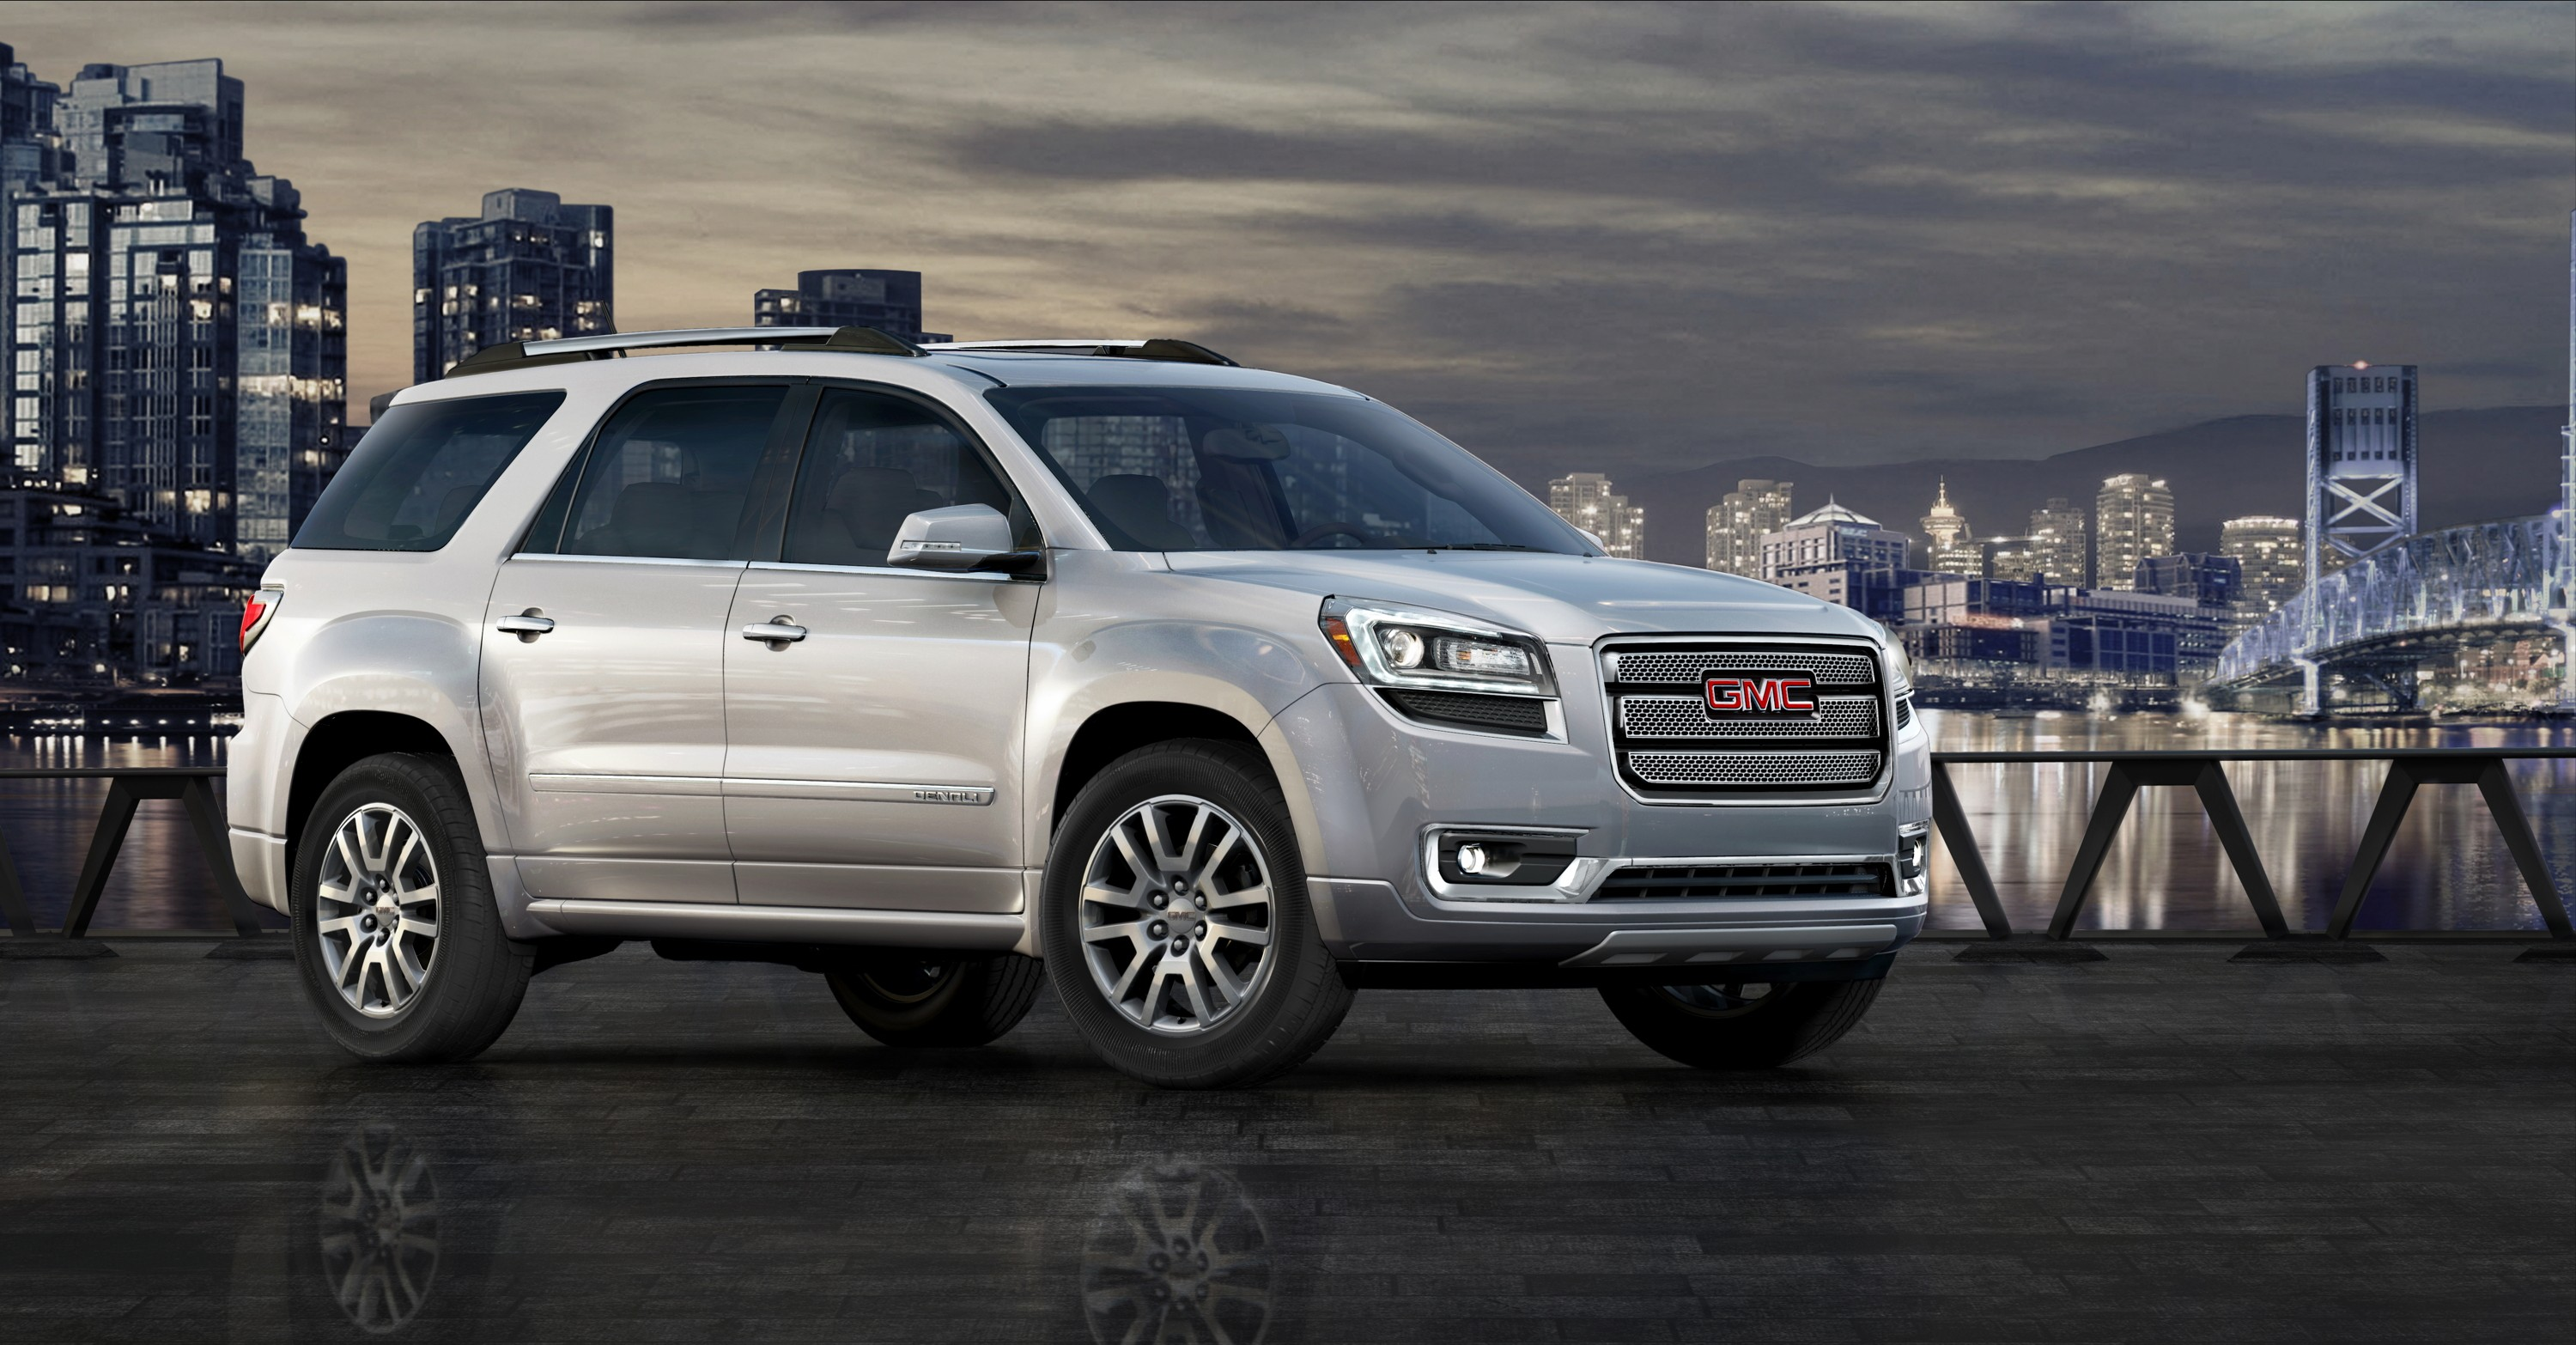 2016 gmc acadia introduced with onstar 4g lte photo gallery_10 2016 gmc acadia introduced with onstar 4g lte autoevolution 2017 acadia fuse box at fashall.co